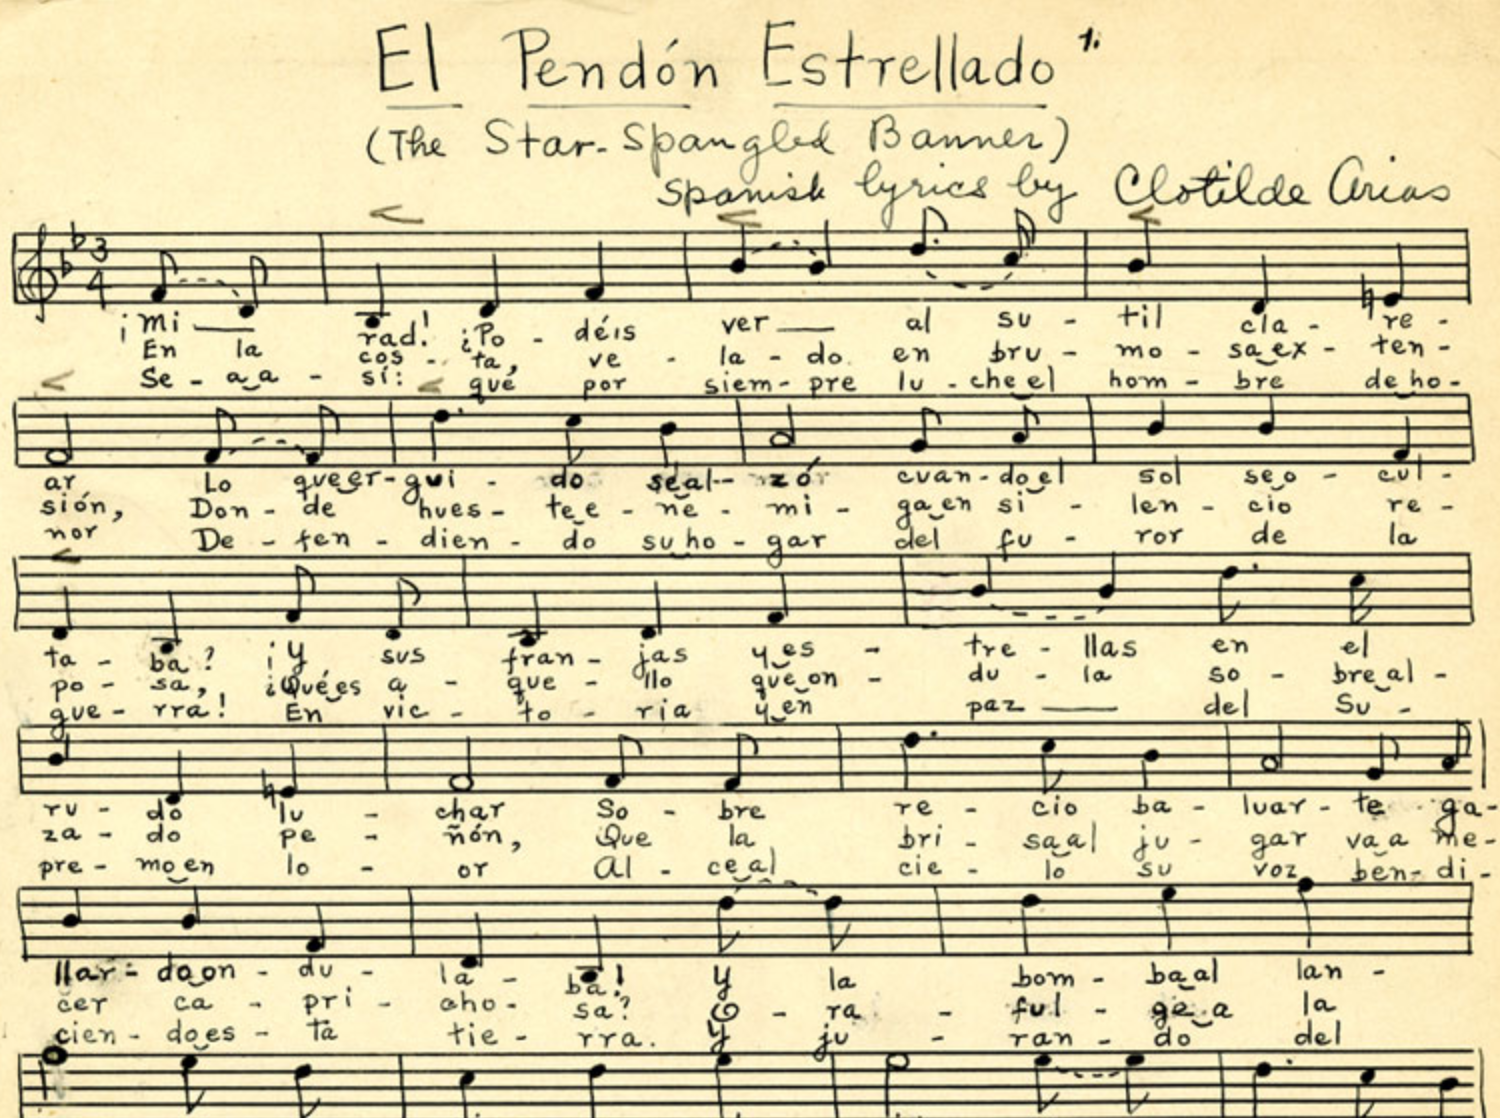 Sheet music for Clotilde Arias's translation of the  Star-Spangled Banner.